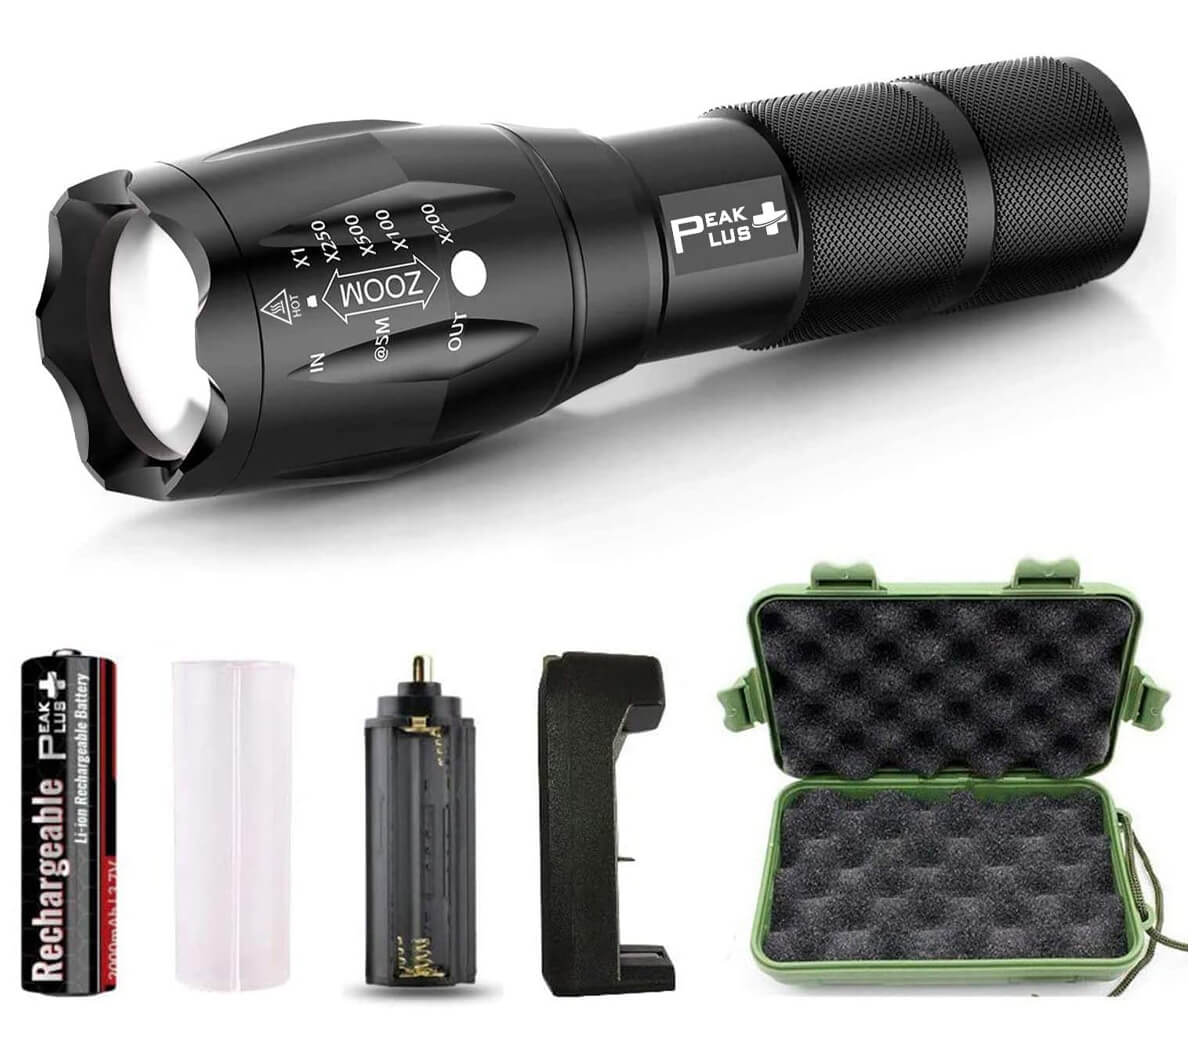 PeakPlus LFX1000 Tactical Flashlight